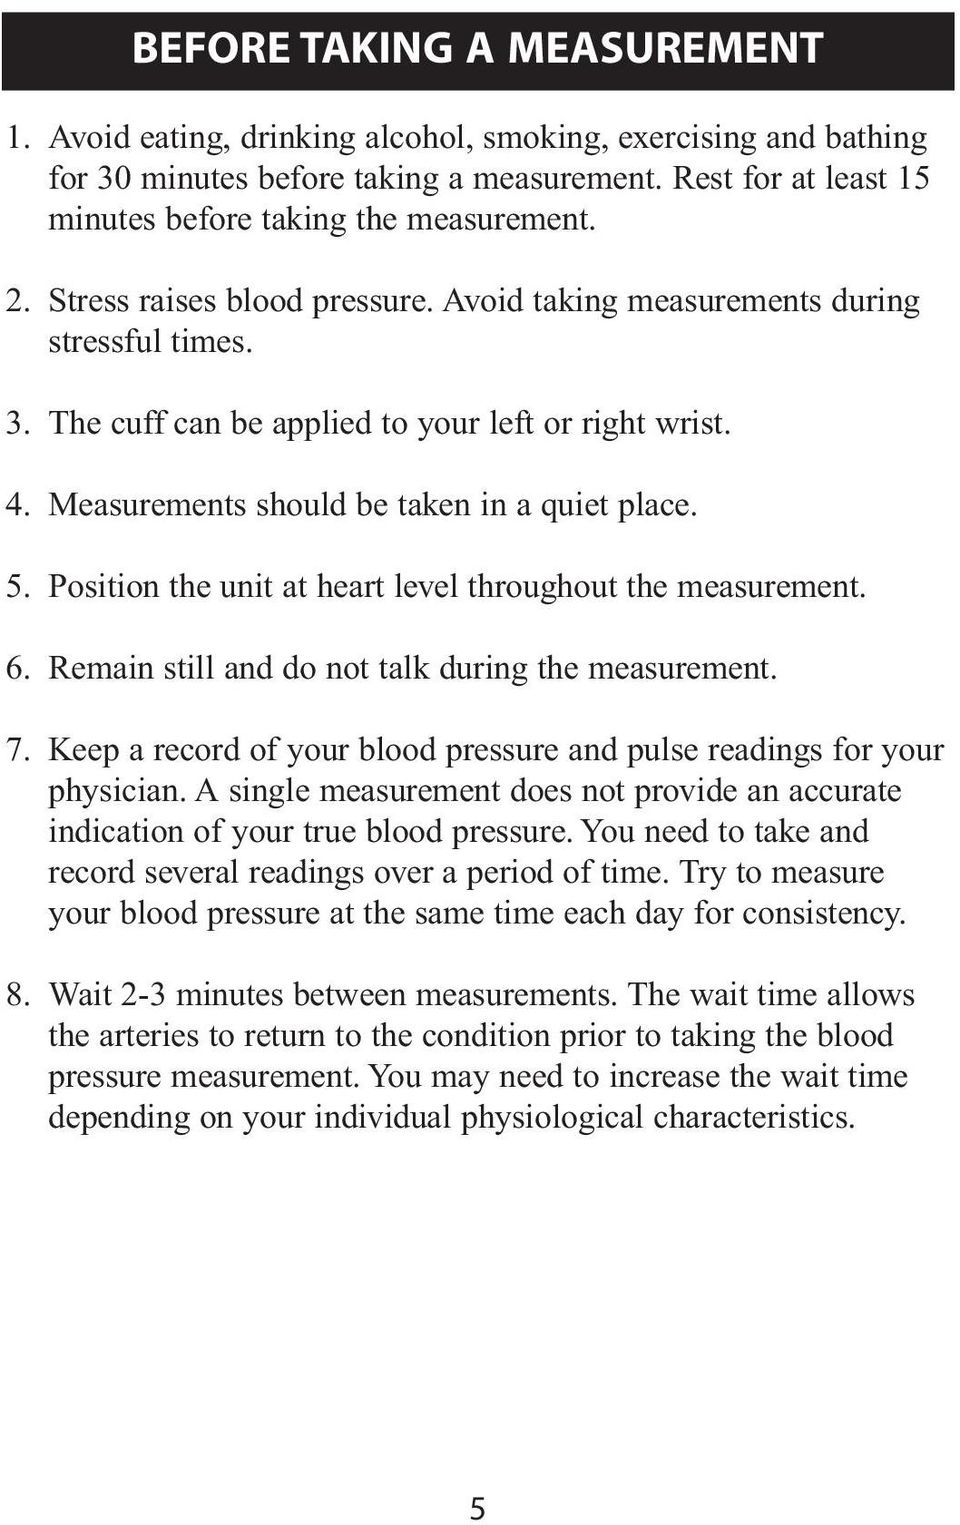 Position the unit at heart level throughout the measurement. 6. Remain still and do not talk during the measurement. 7. Keep a record of your blood pressure and pulse readings for your physician.